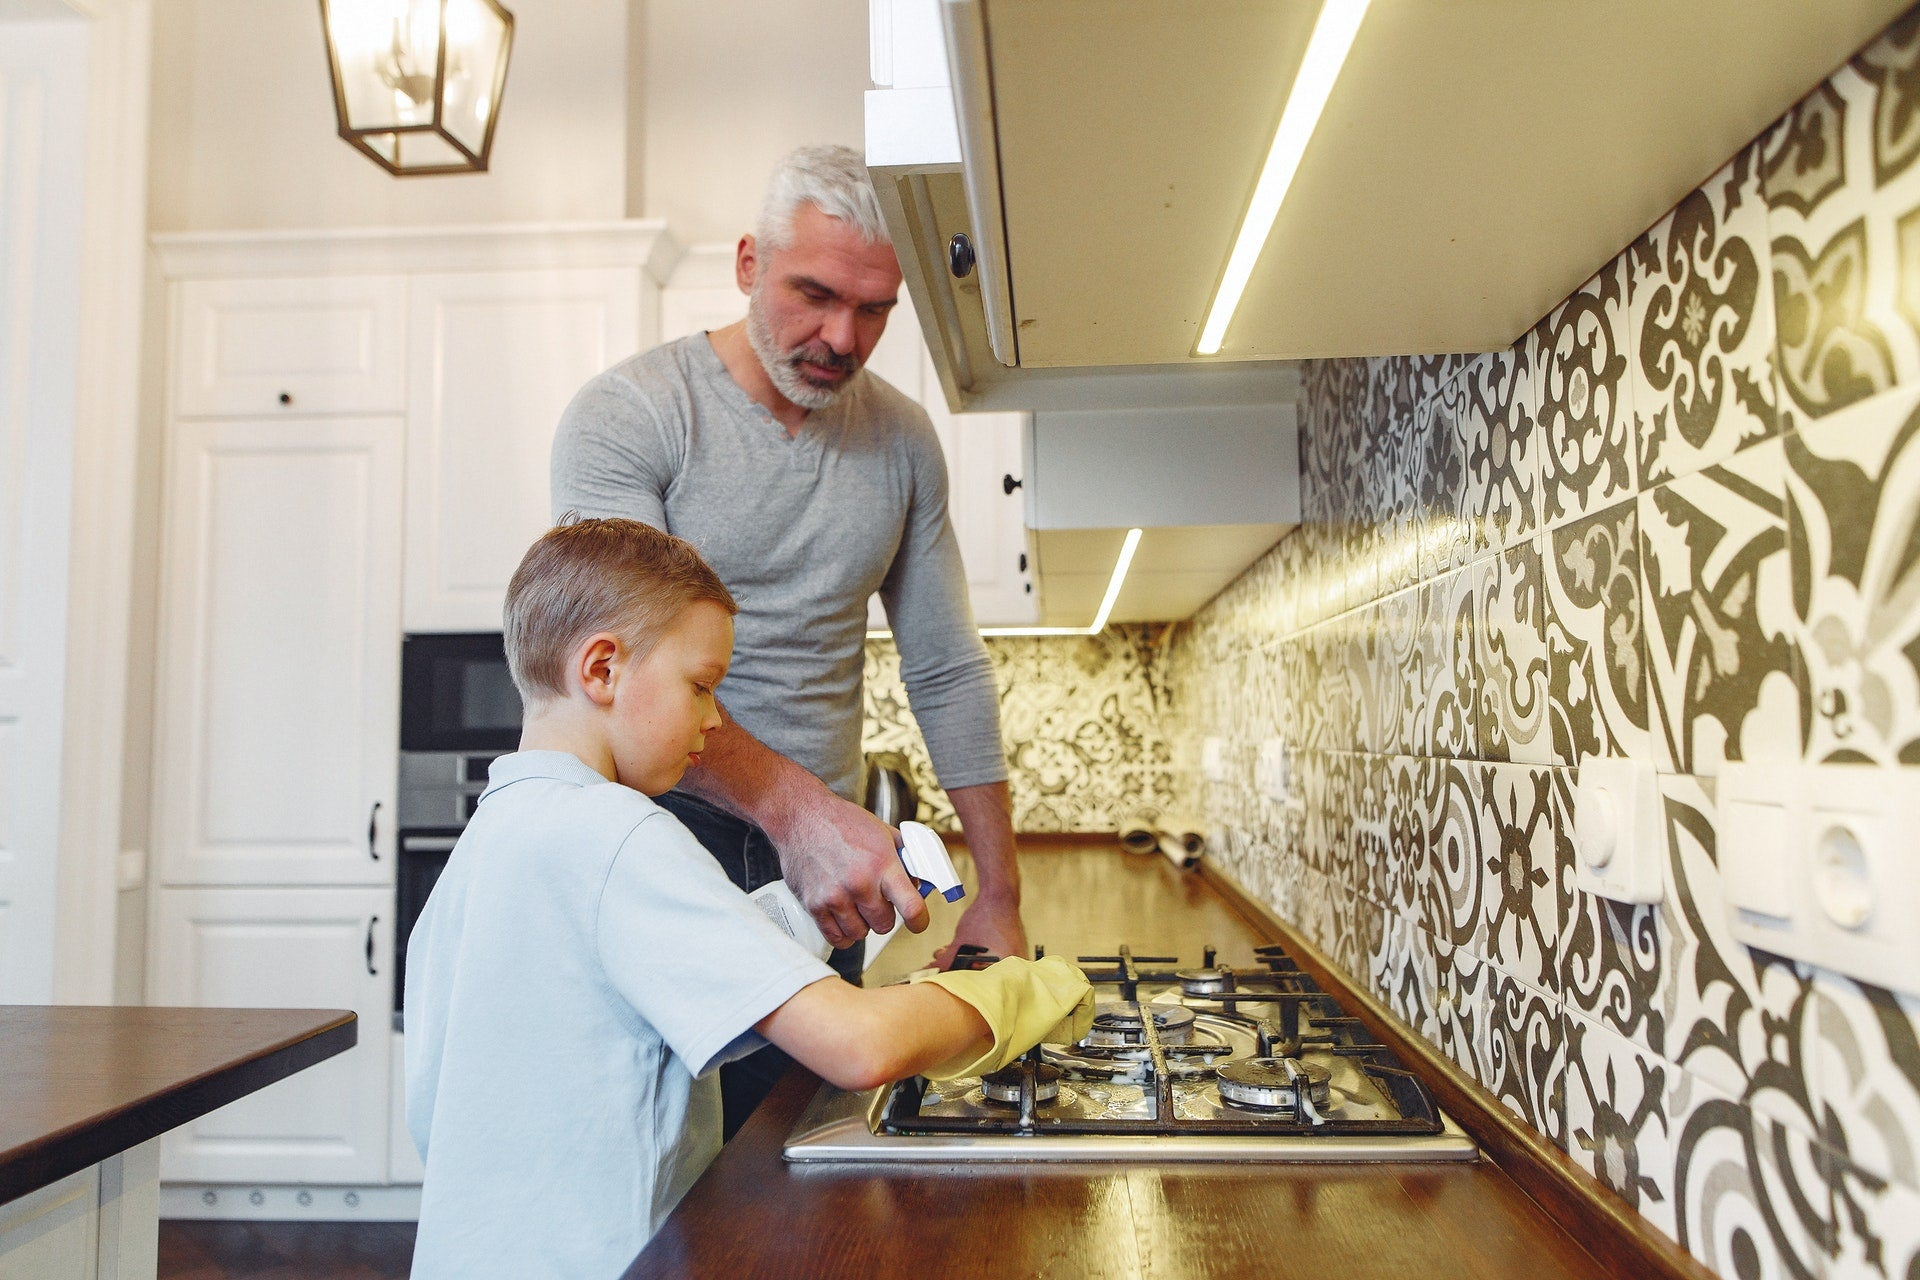 Dad and son cleaning the kitchen